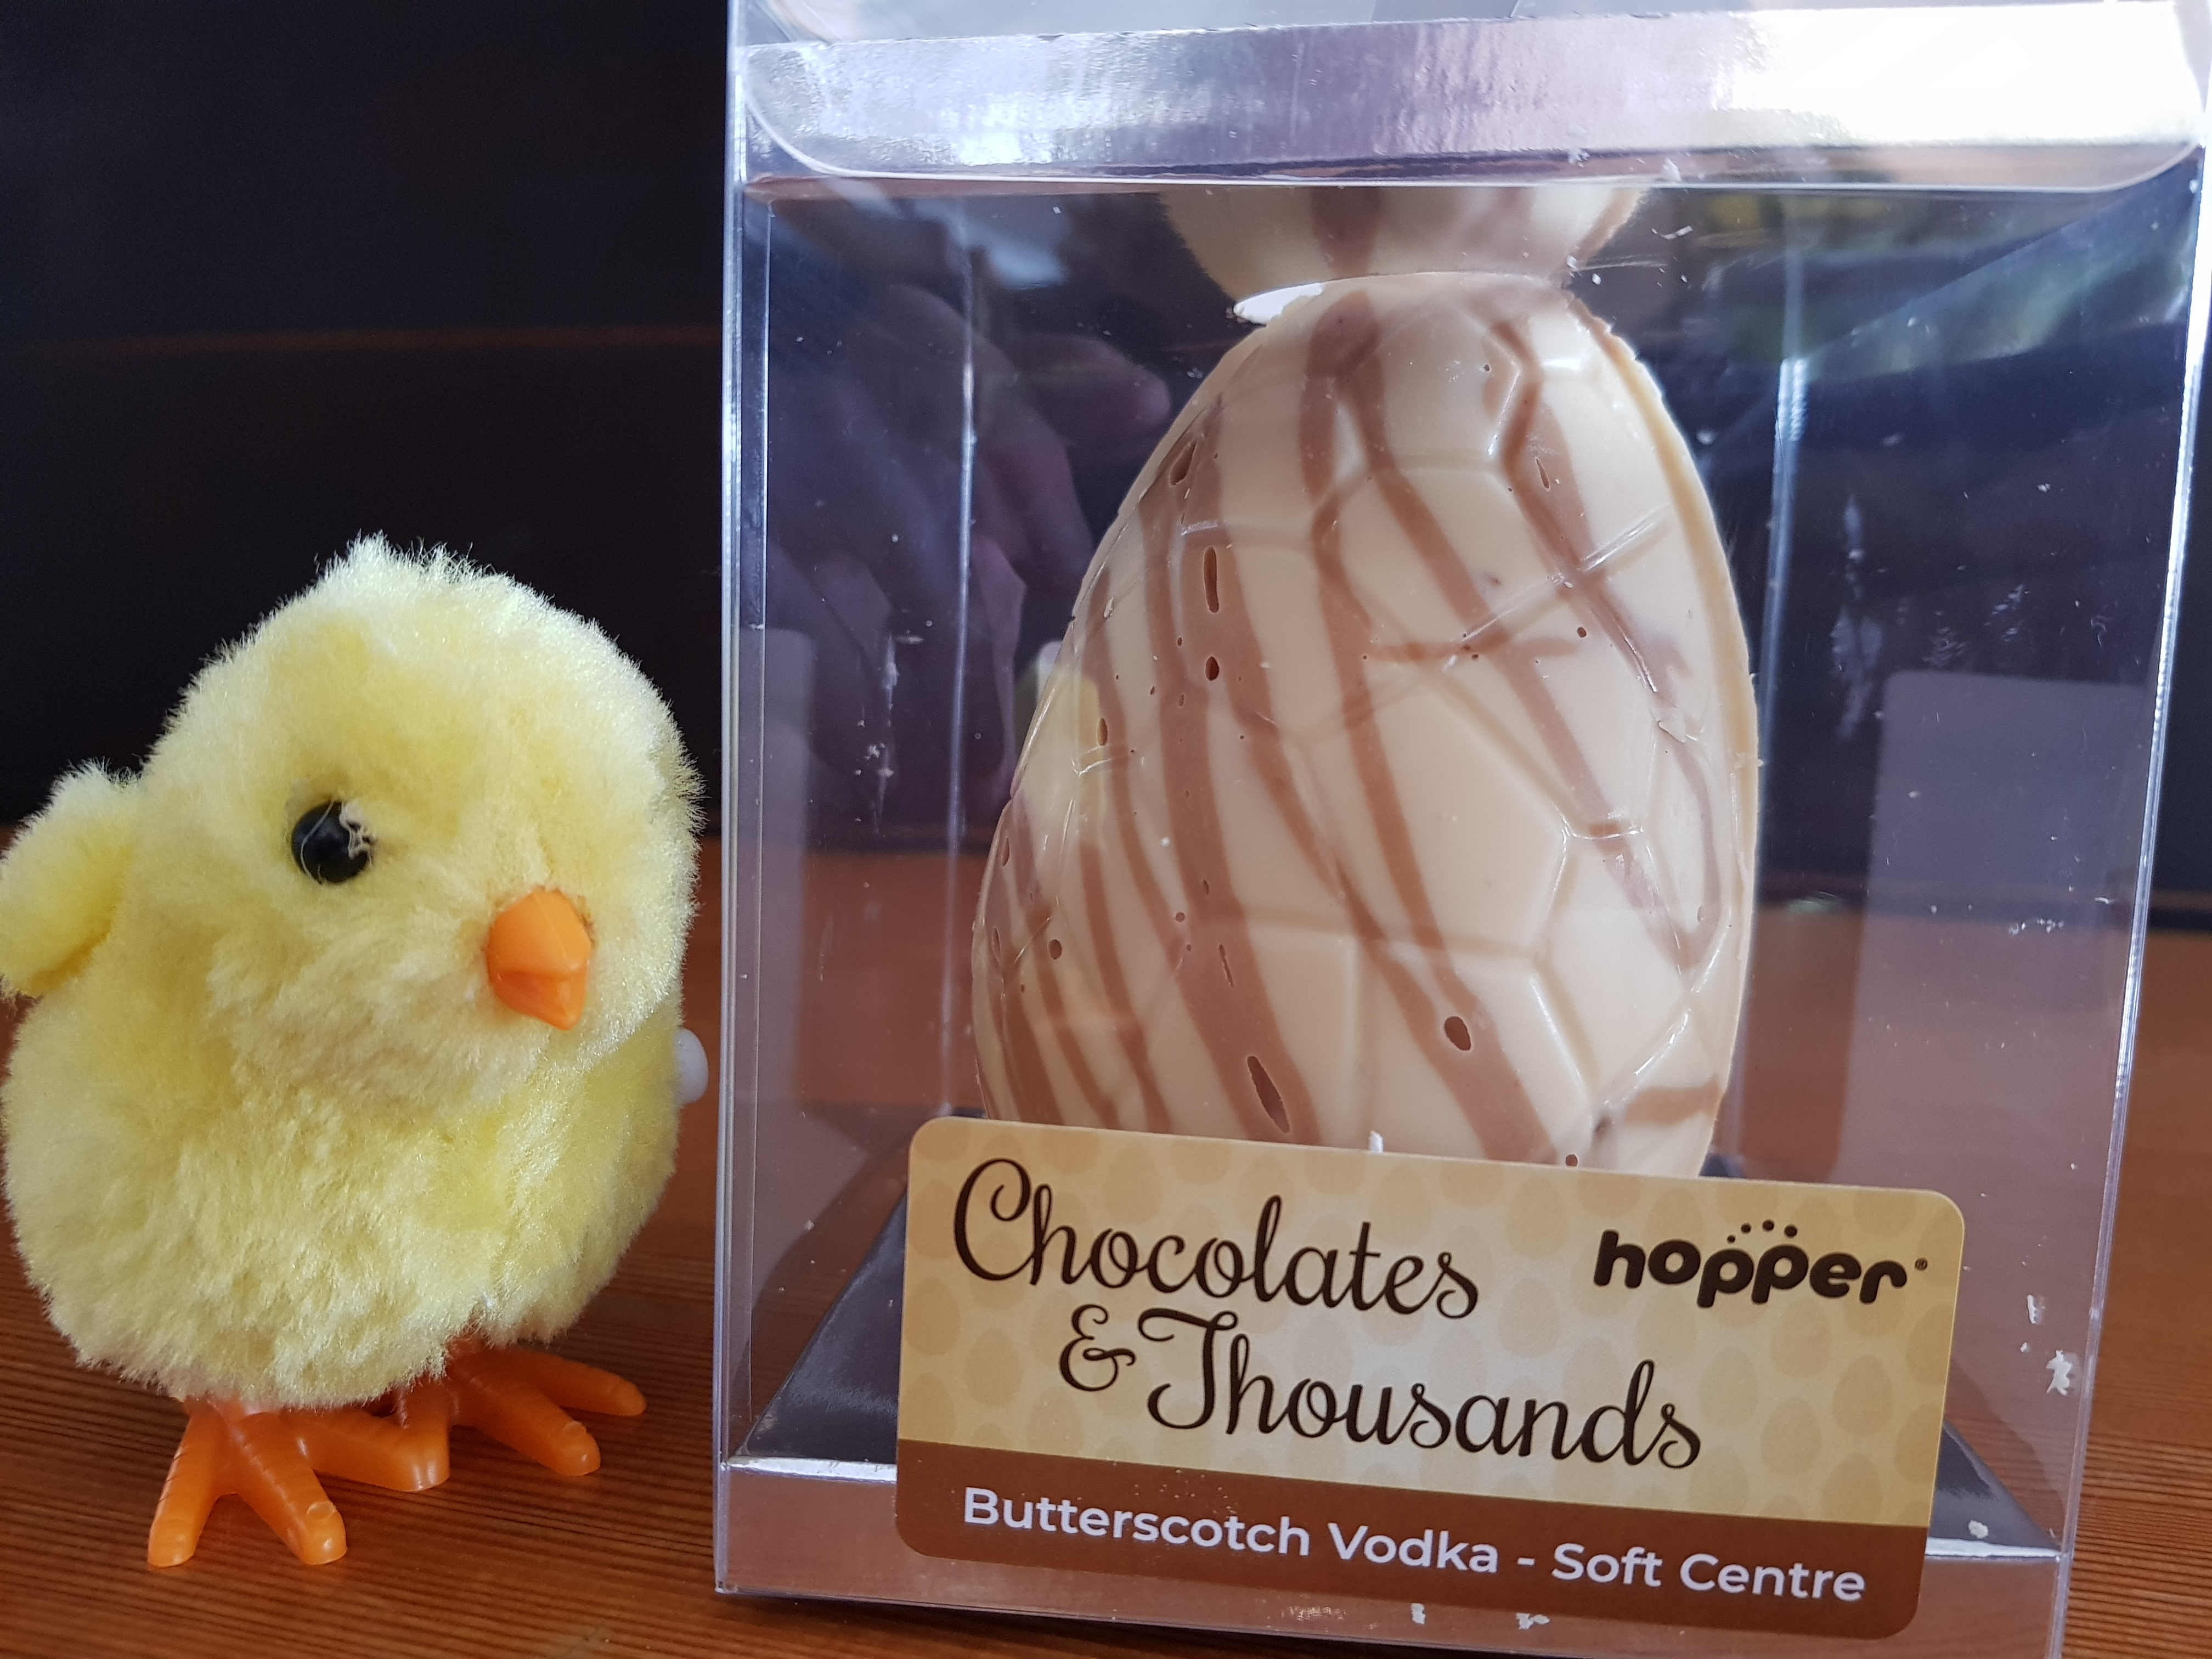 Hopper Chocolates and Thousands Butterscotch Vodka Soft Centre Easter egg. Gluten, dairy, egg and nut free